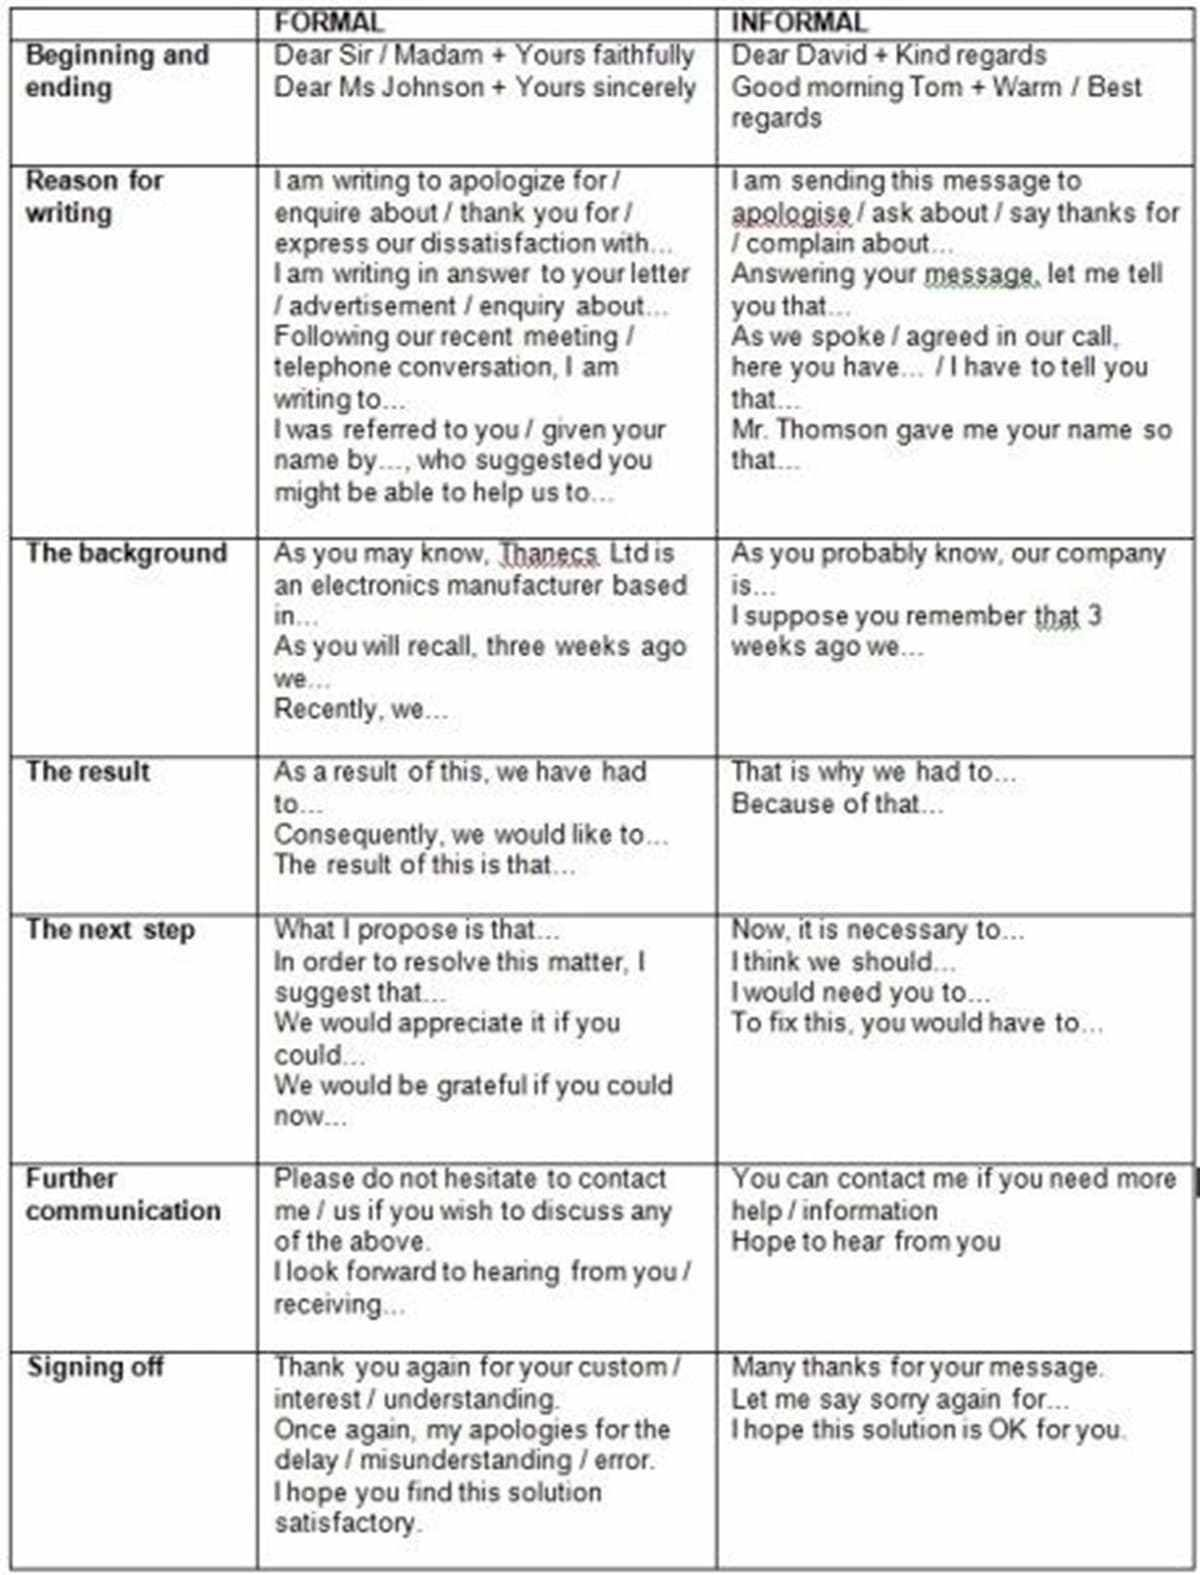 differences between formal vs  informal letters